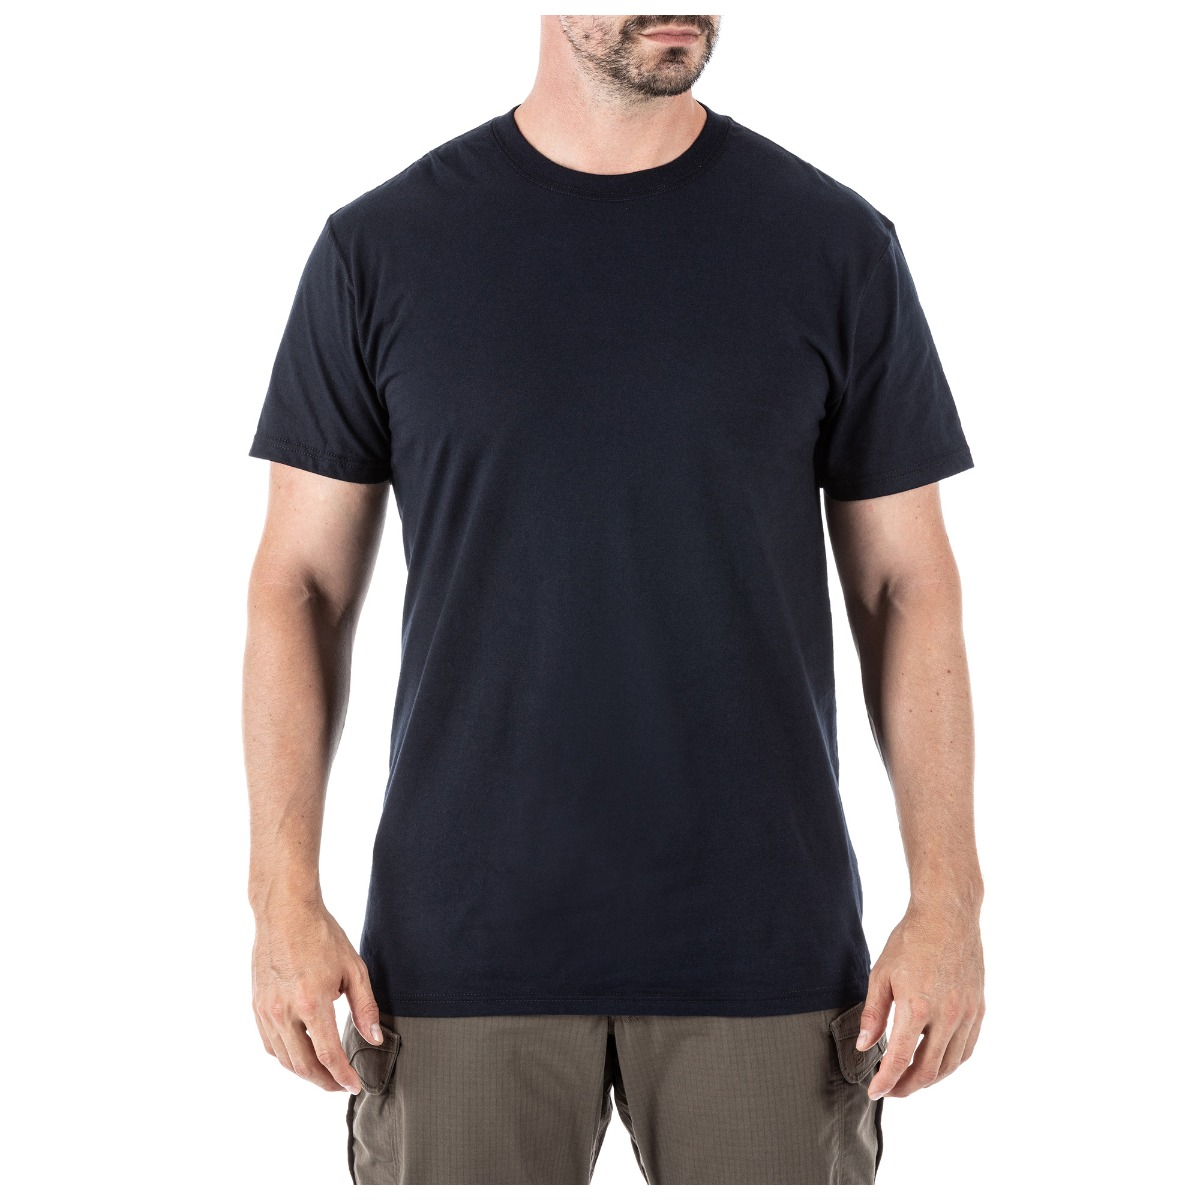 Buy 5.11 Tactical MenS Utili T Crew Shirt 3 Pack 5.11